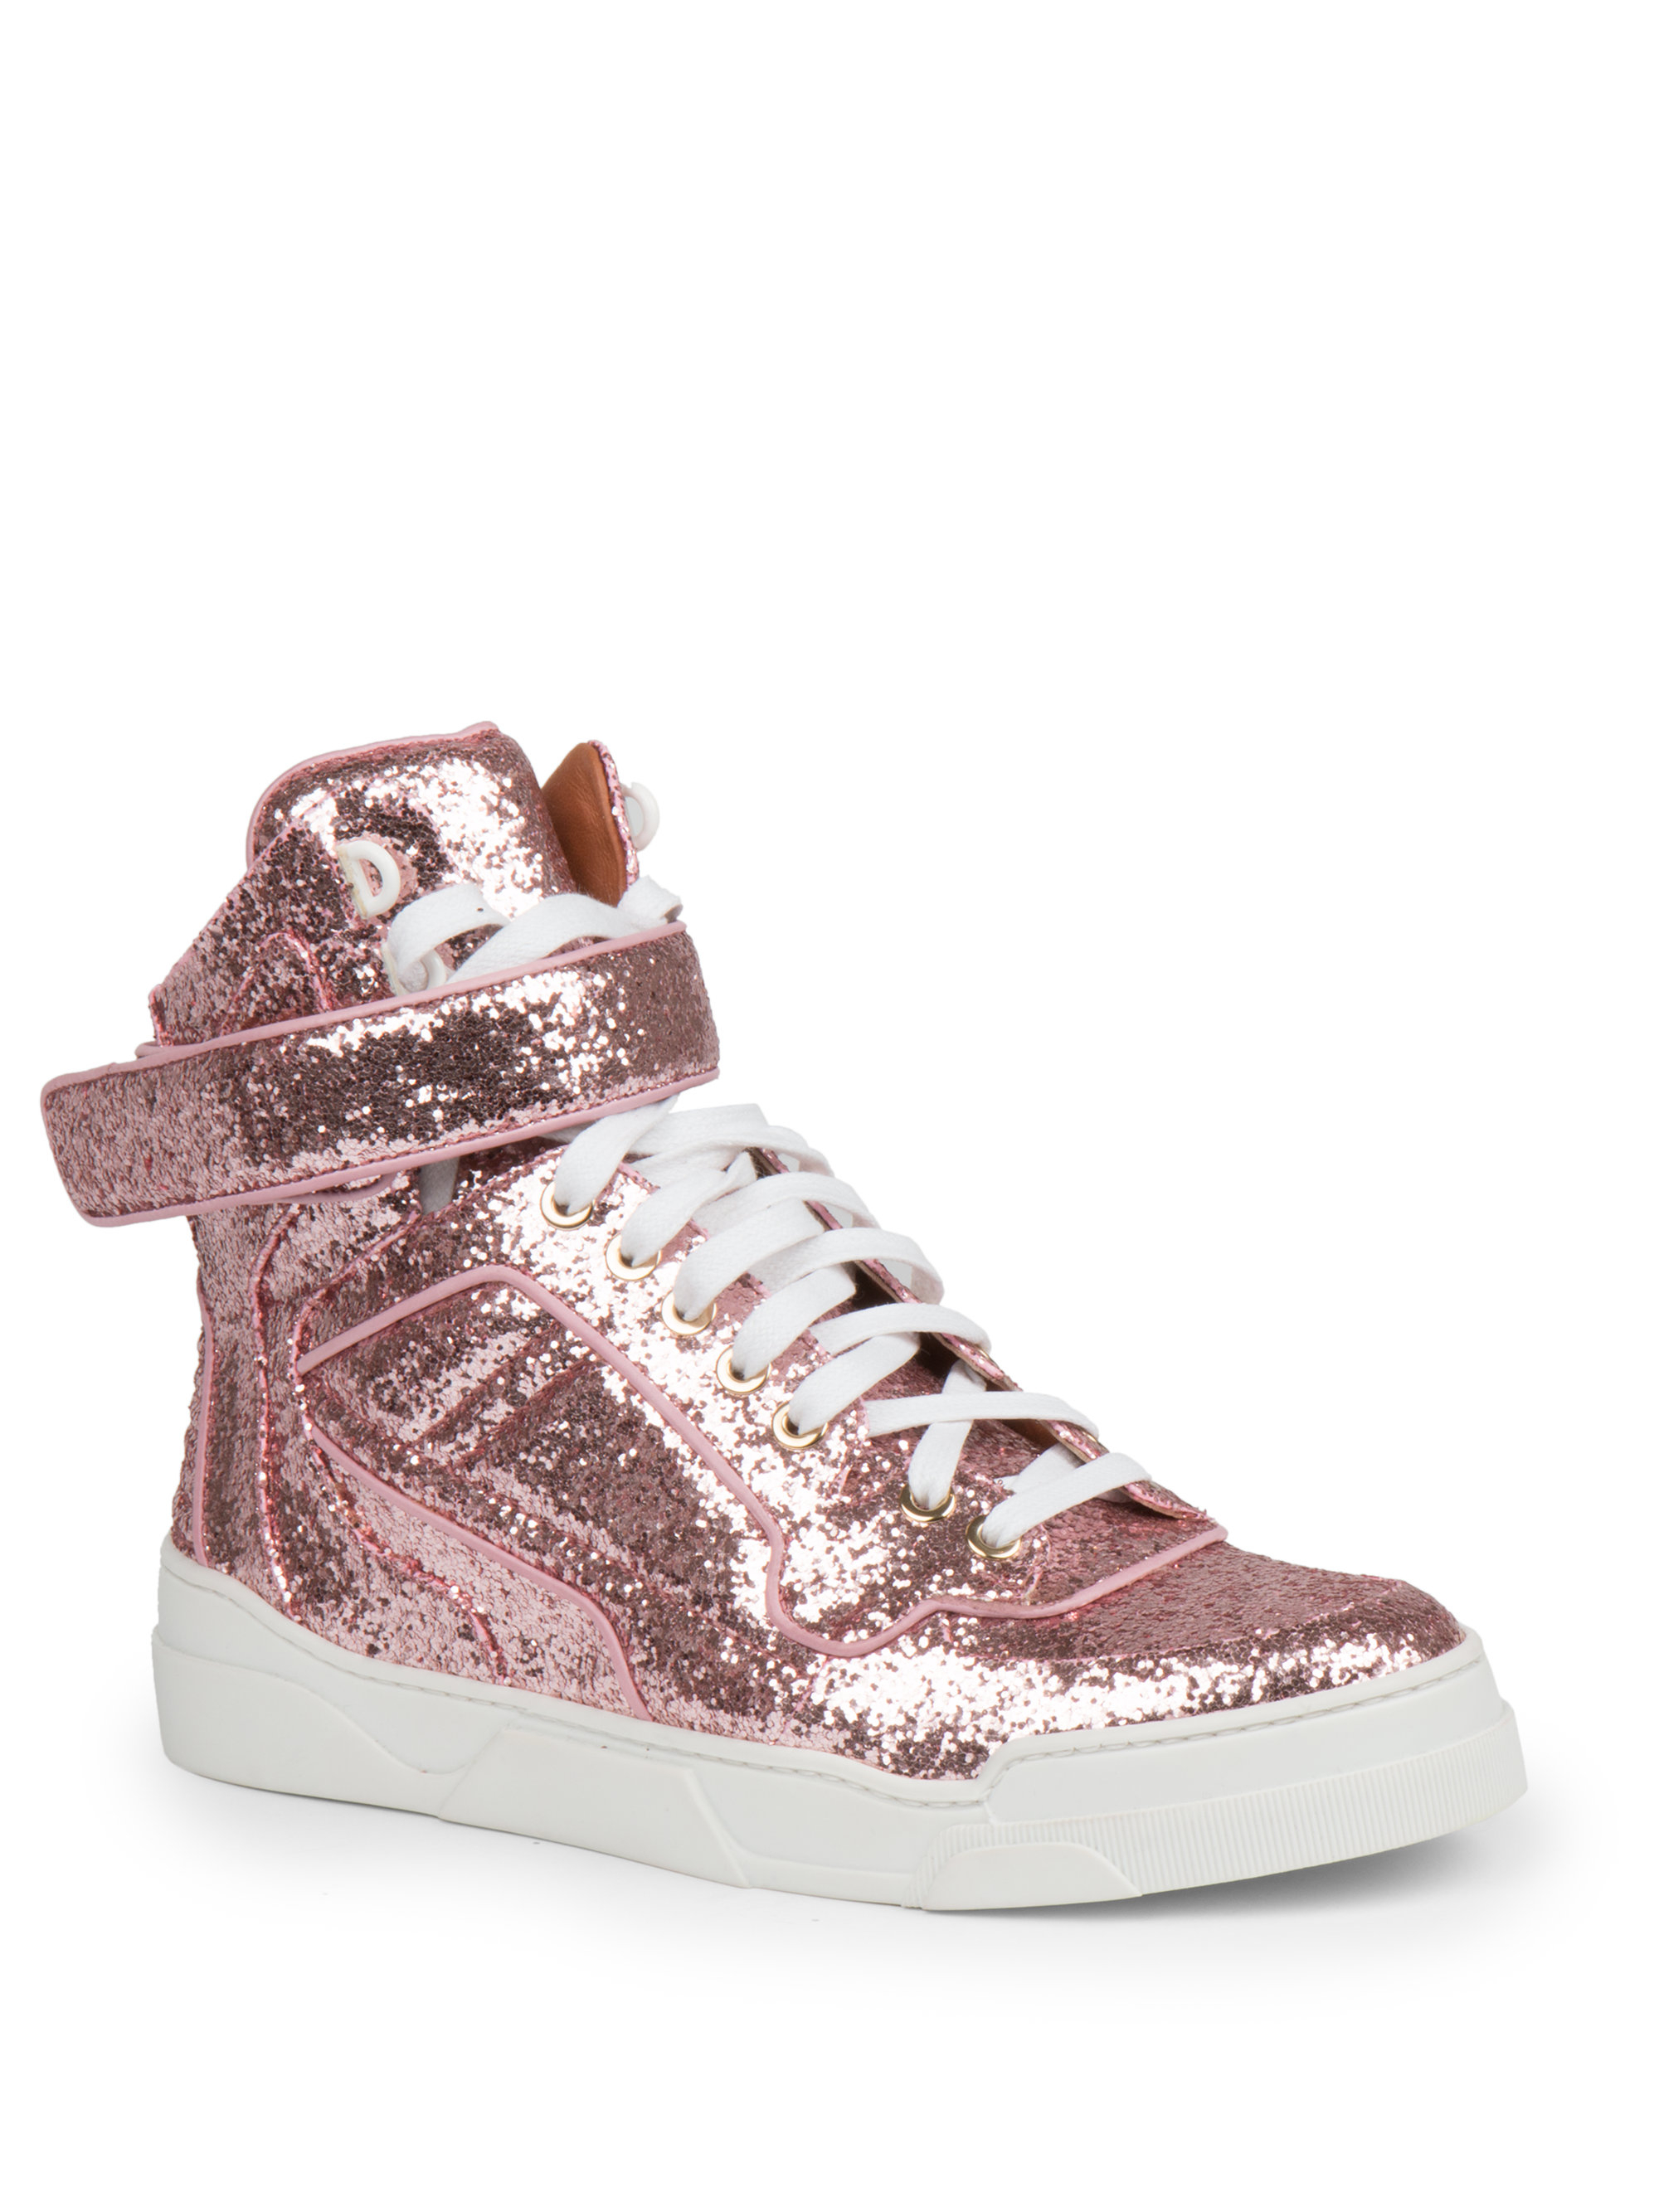 Givenchy Glitter High Top Sneaker In Pink Lyst